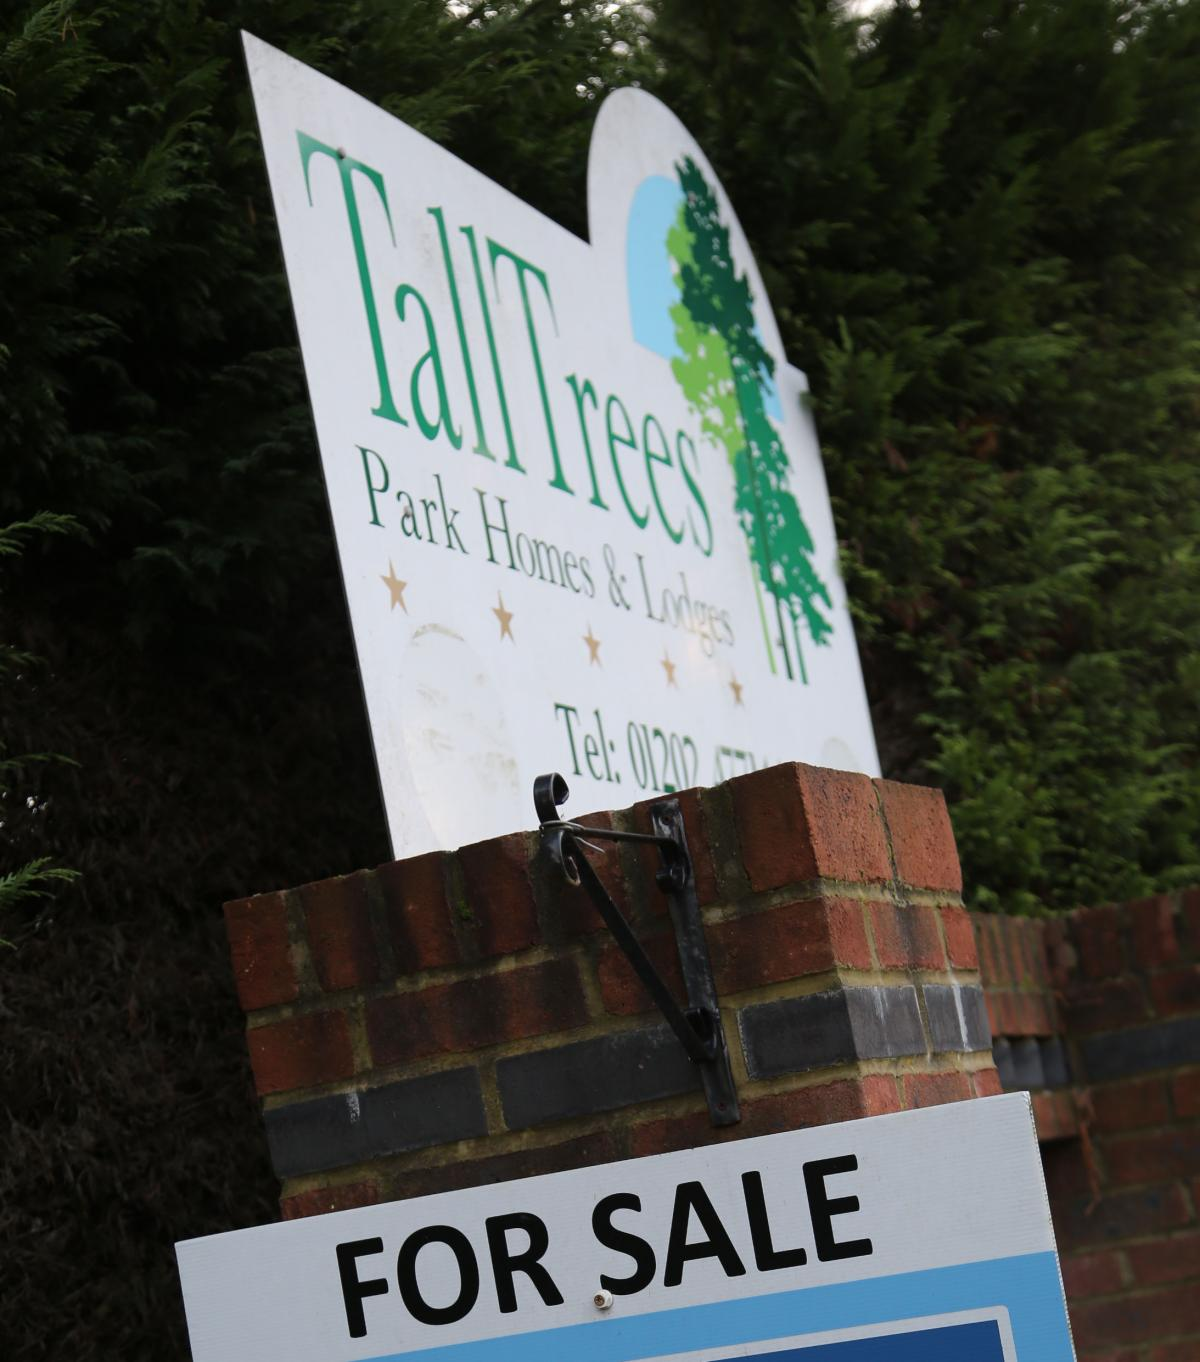 Tall Trees Park Is Sold Amid Planning Enforcement Row